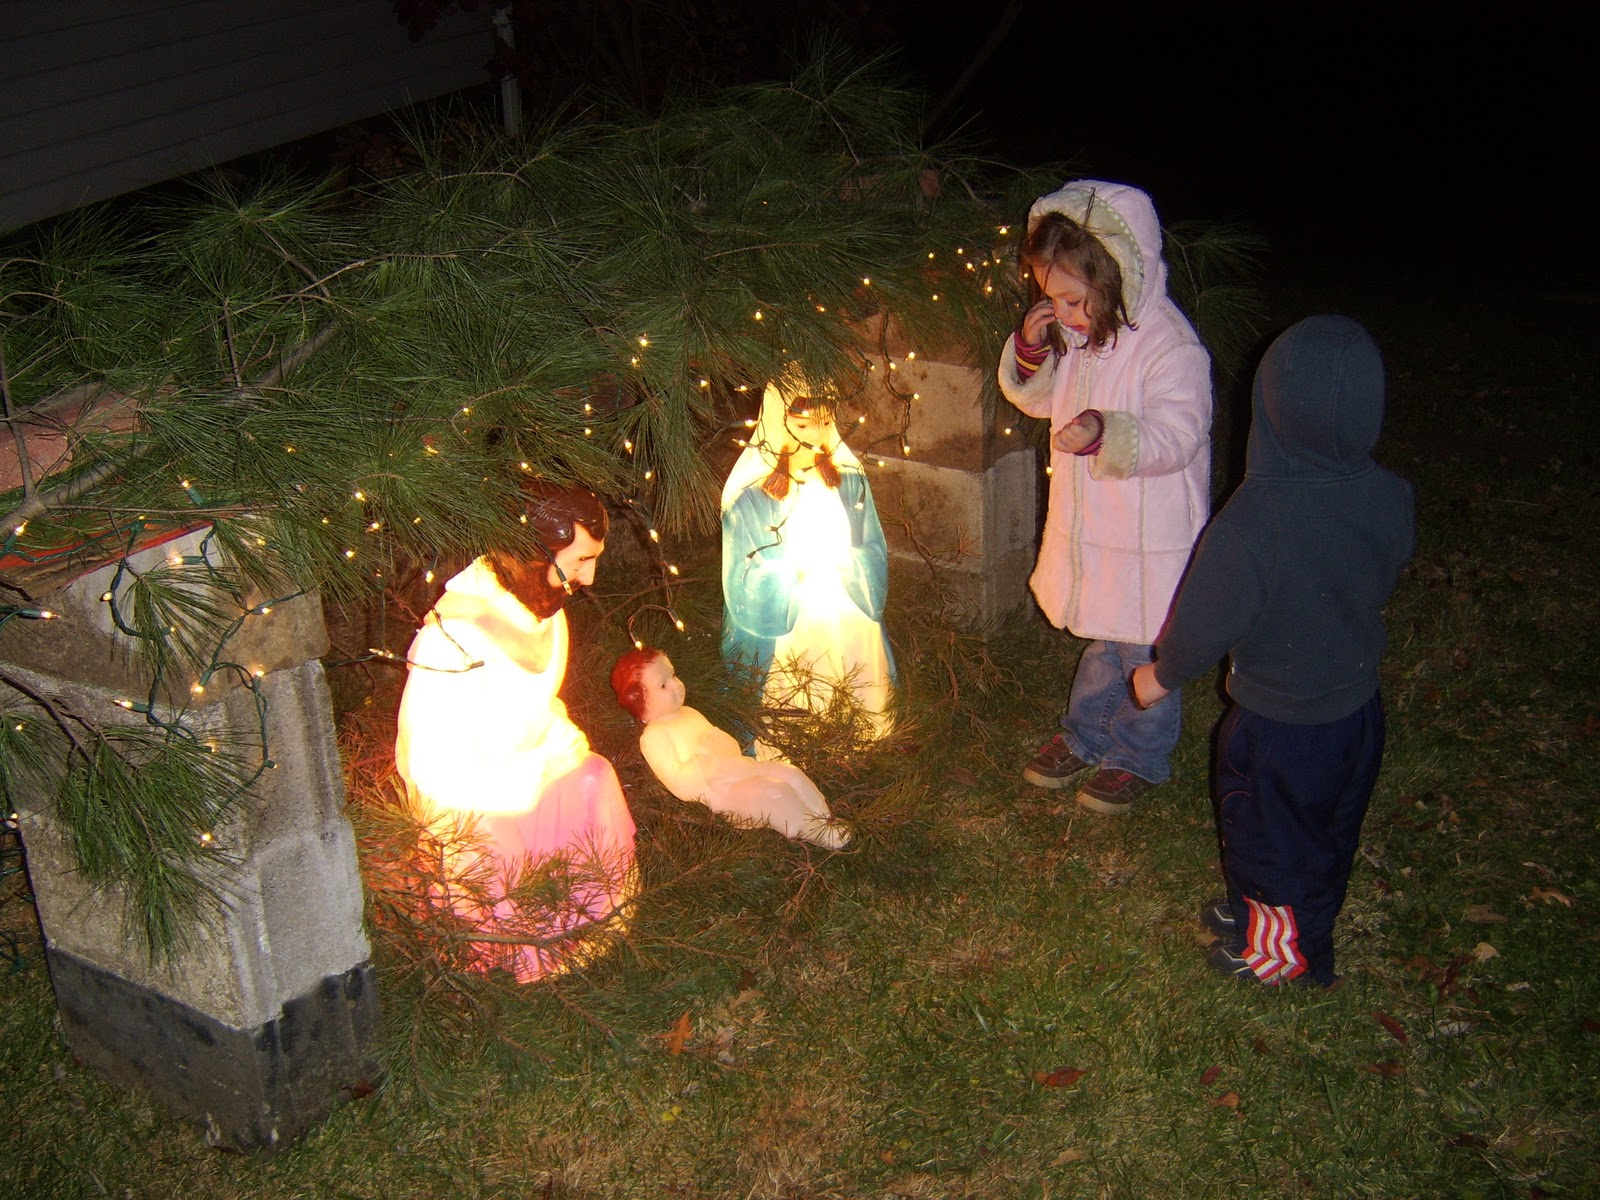 outside christmas lights another thing i love that for me truly shines bright in my favorites for christmas we build a stable and we have a three piece - Jesus Christmas Decorations